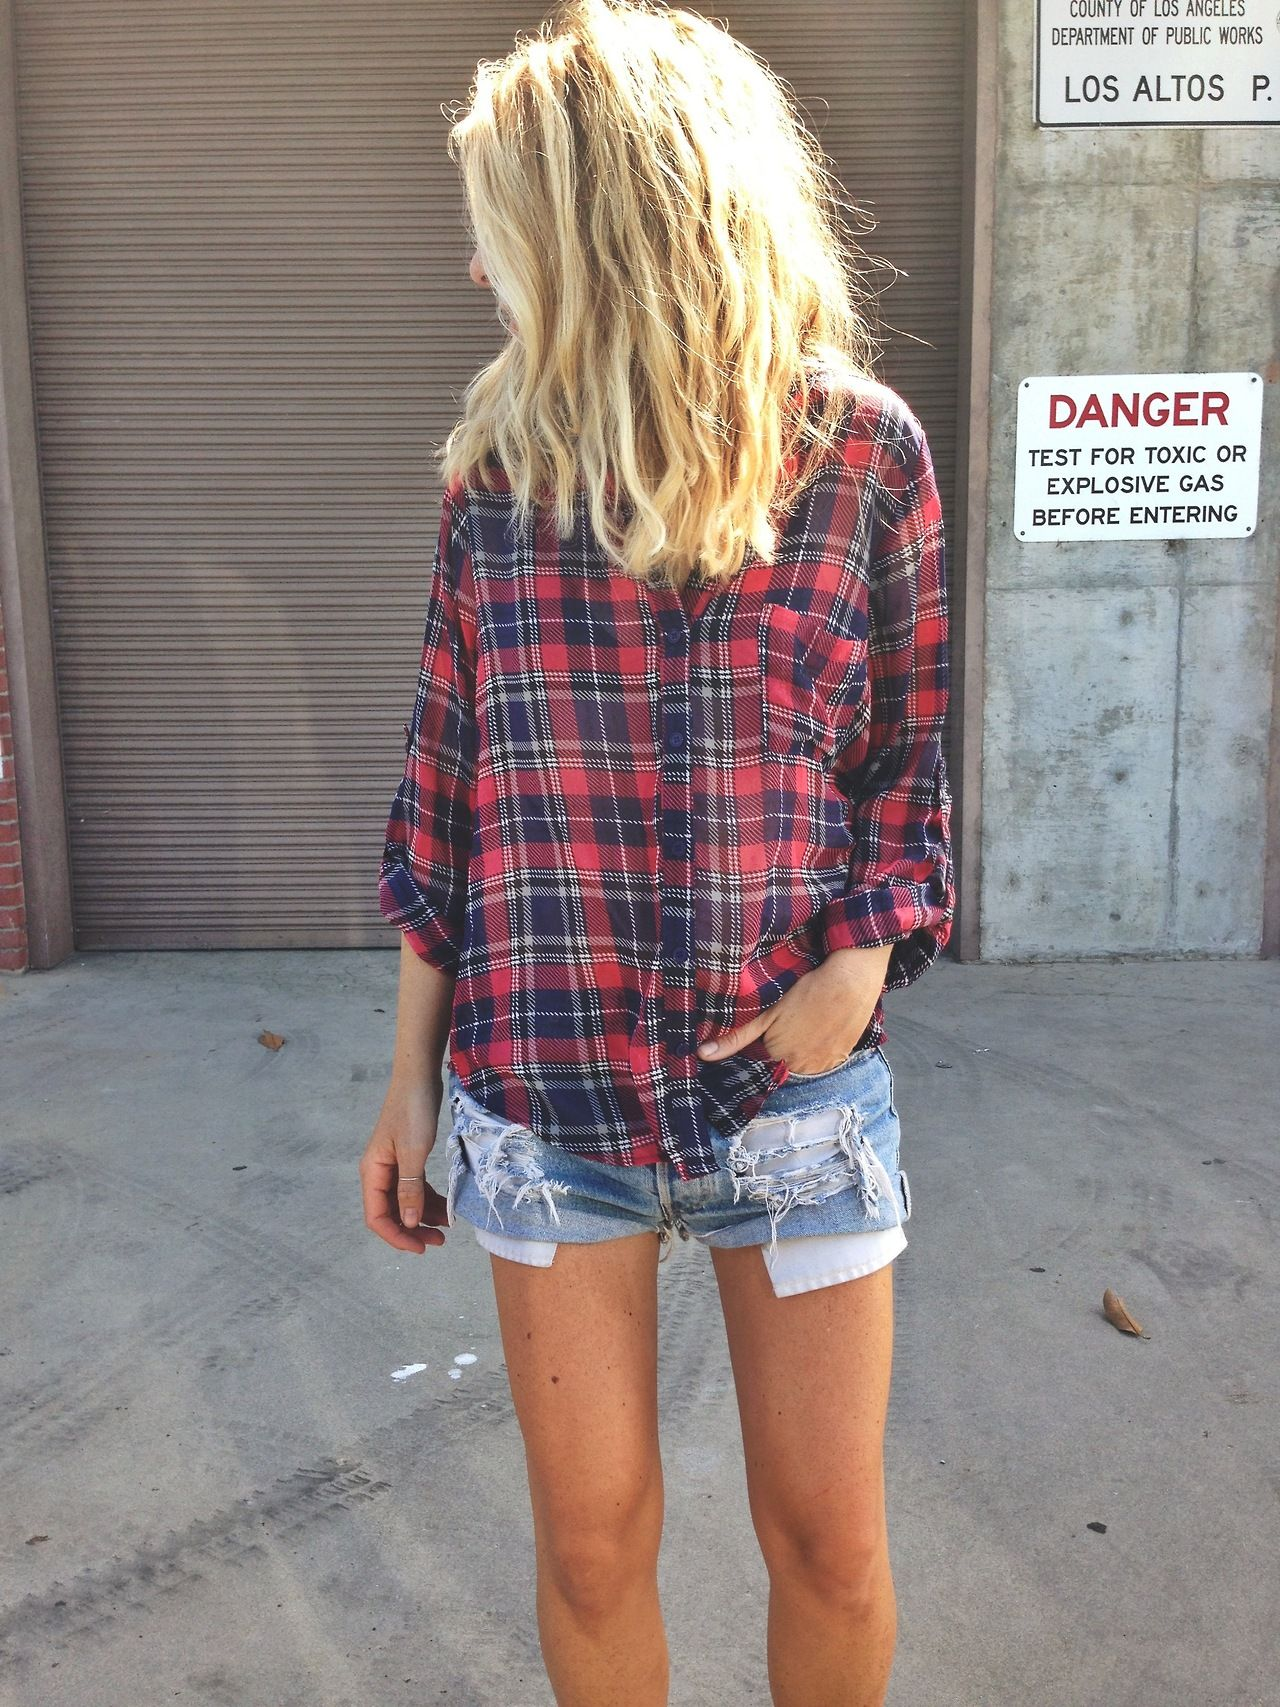 Flannel shirt with shorts  aaaaah iud give anything to be able to wear shorts in warm weather